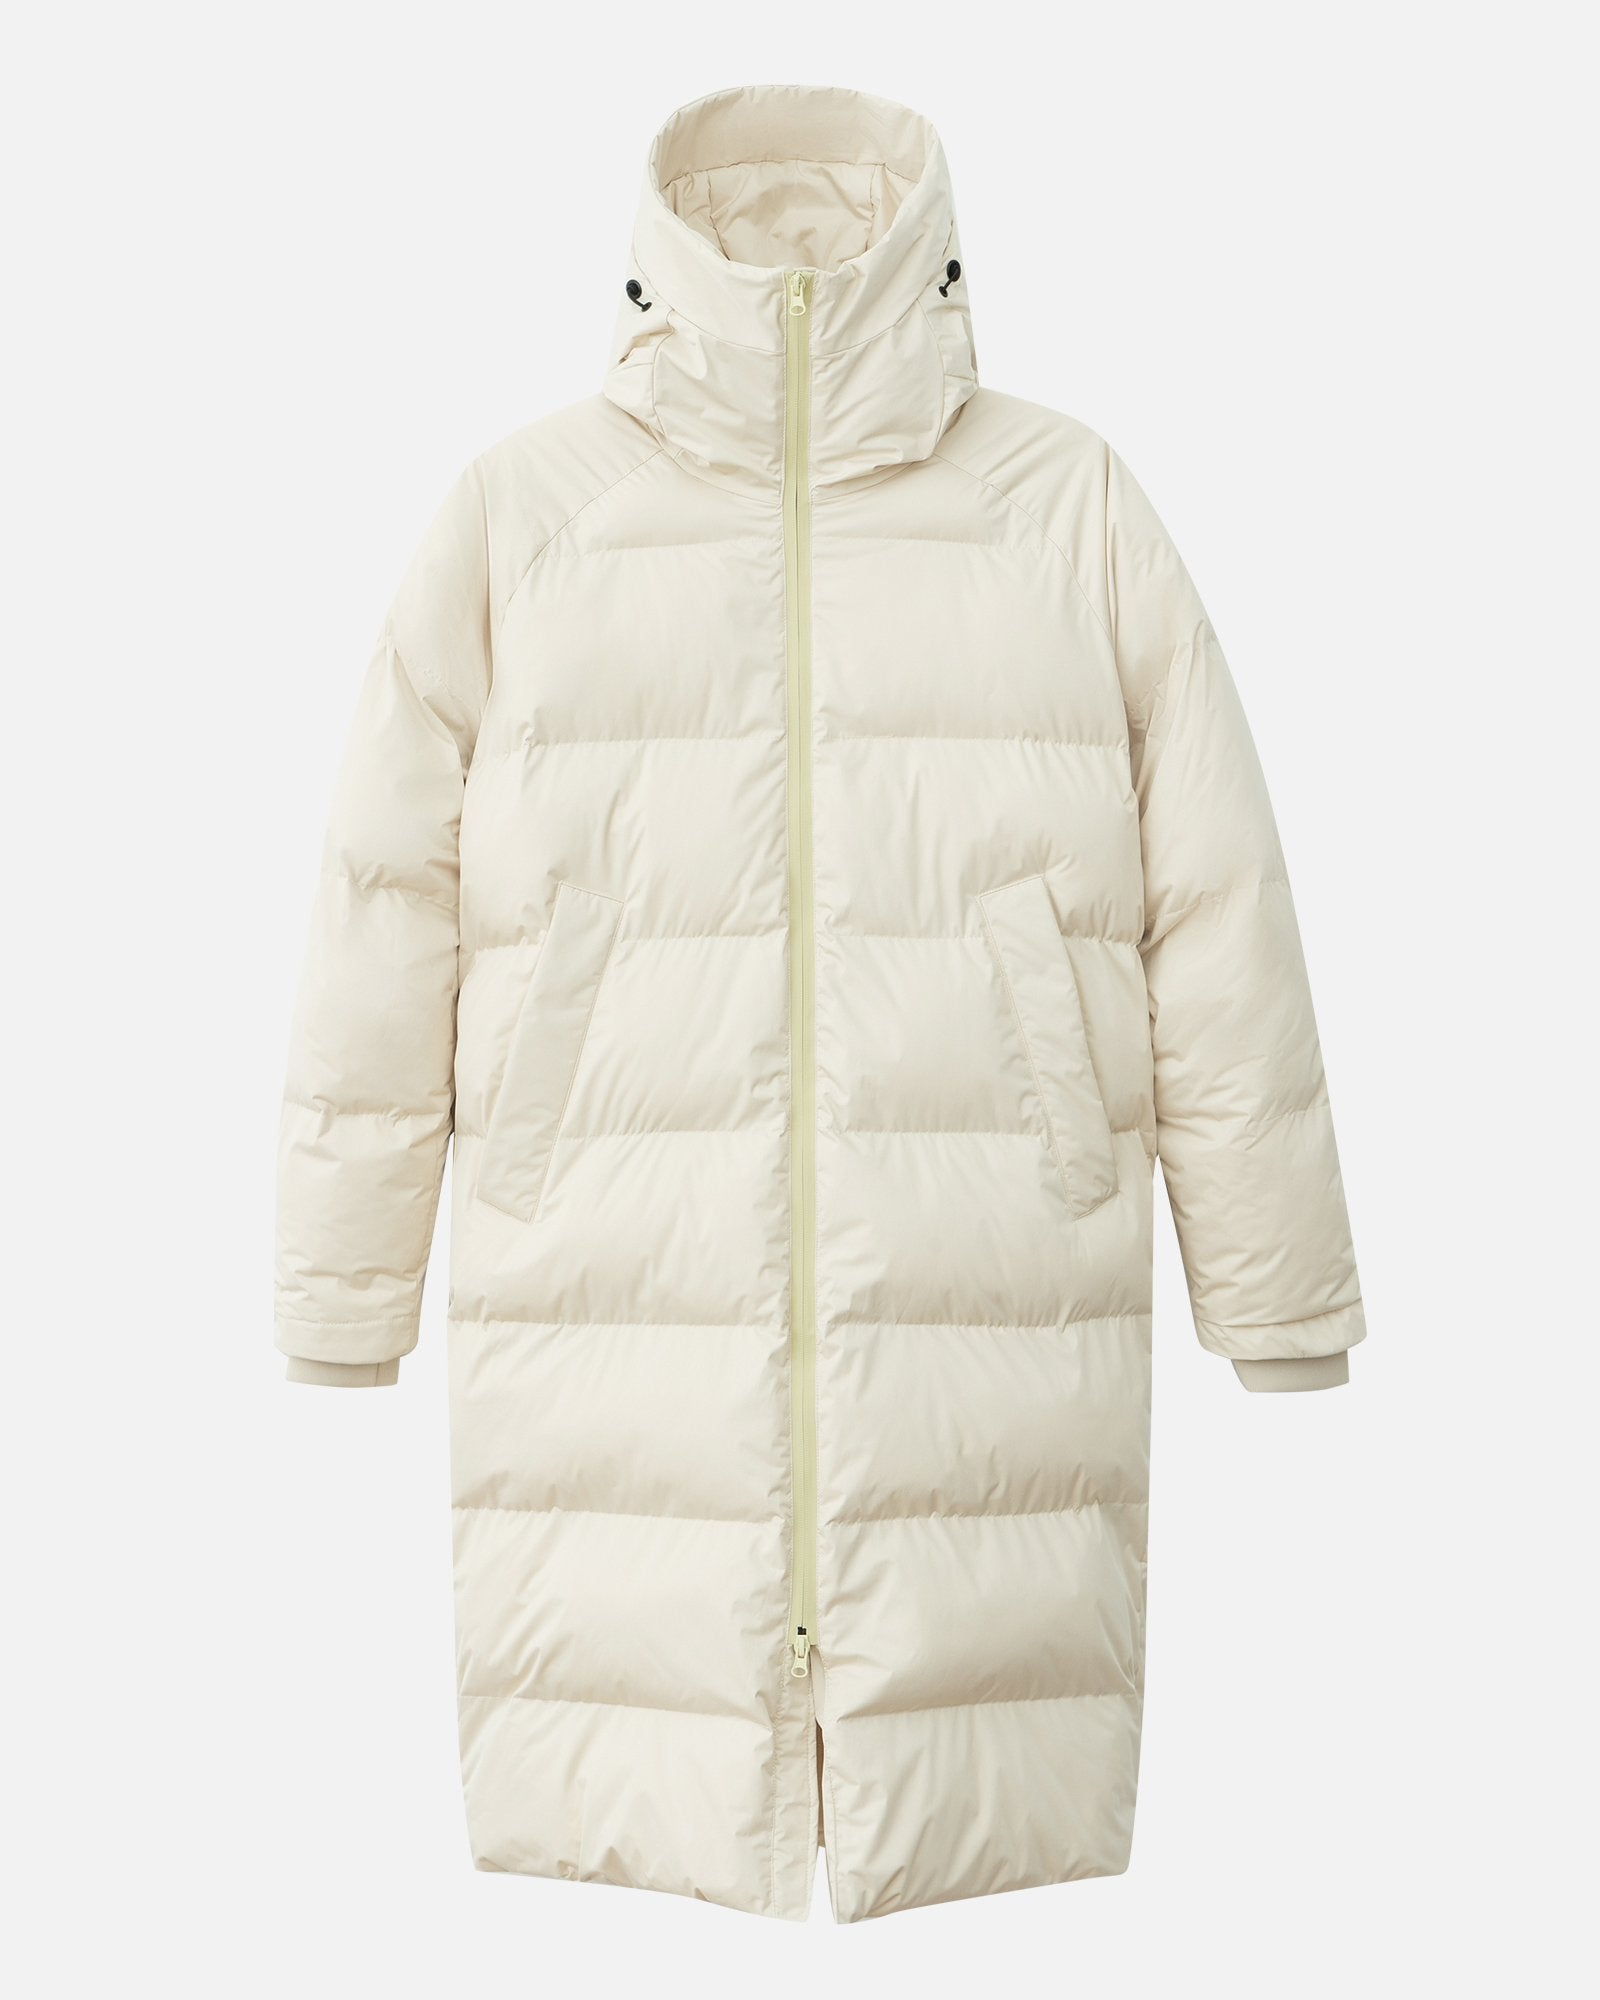 DOWN COAT IN IVORY WHITE BY SHU